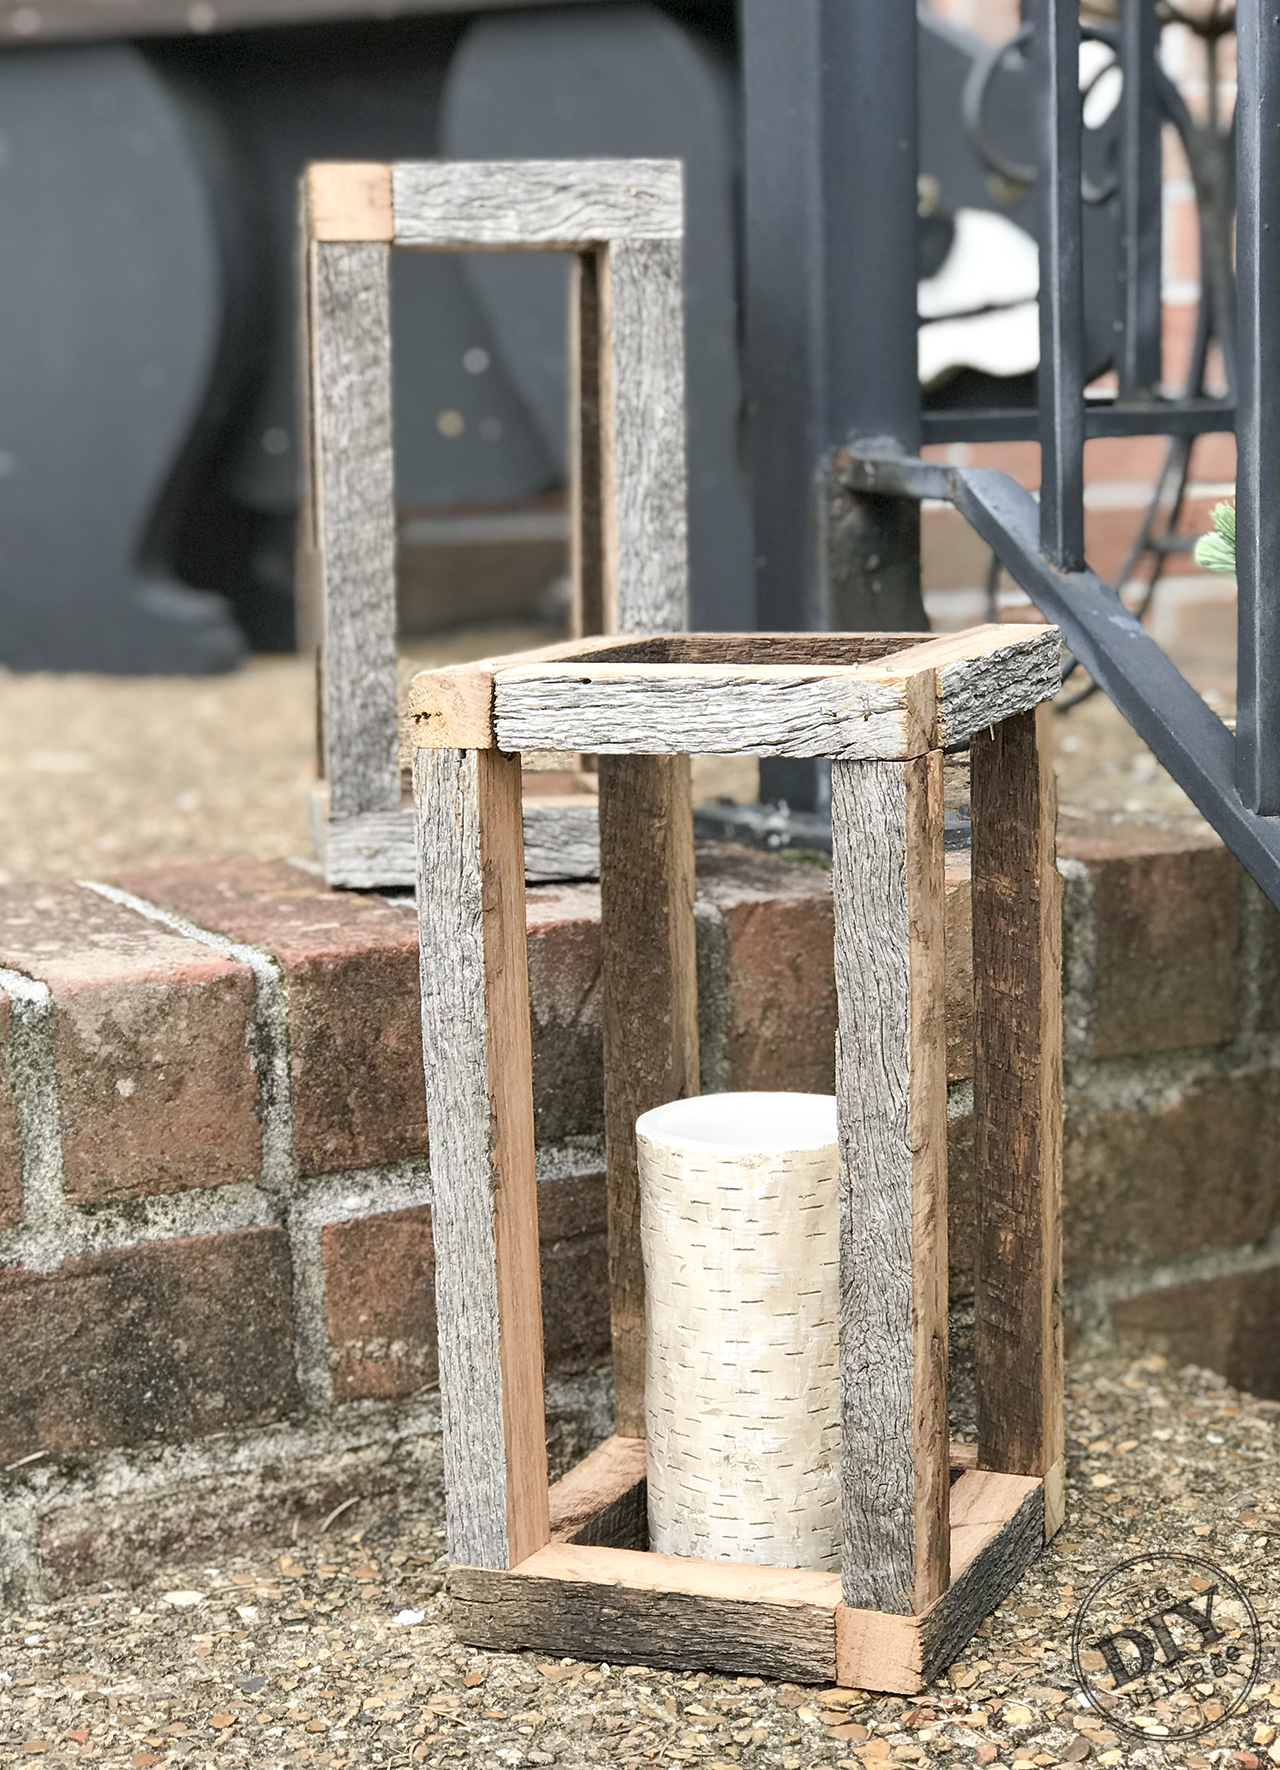 DIY Barnwood Lanterns - easy porch project - #porch #diy #porchdecor #lantern #barnwood #upcycle #frontdoor